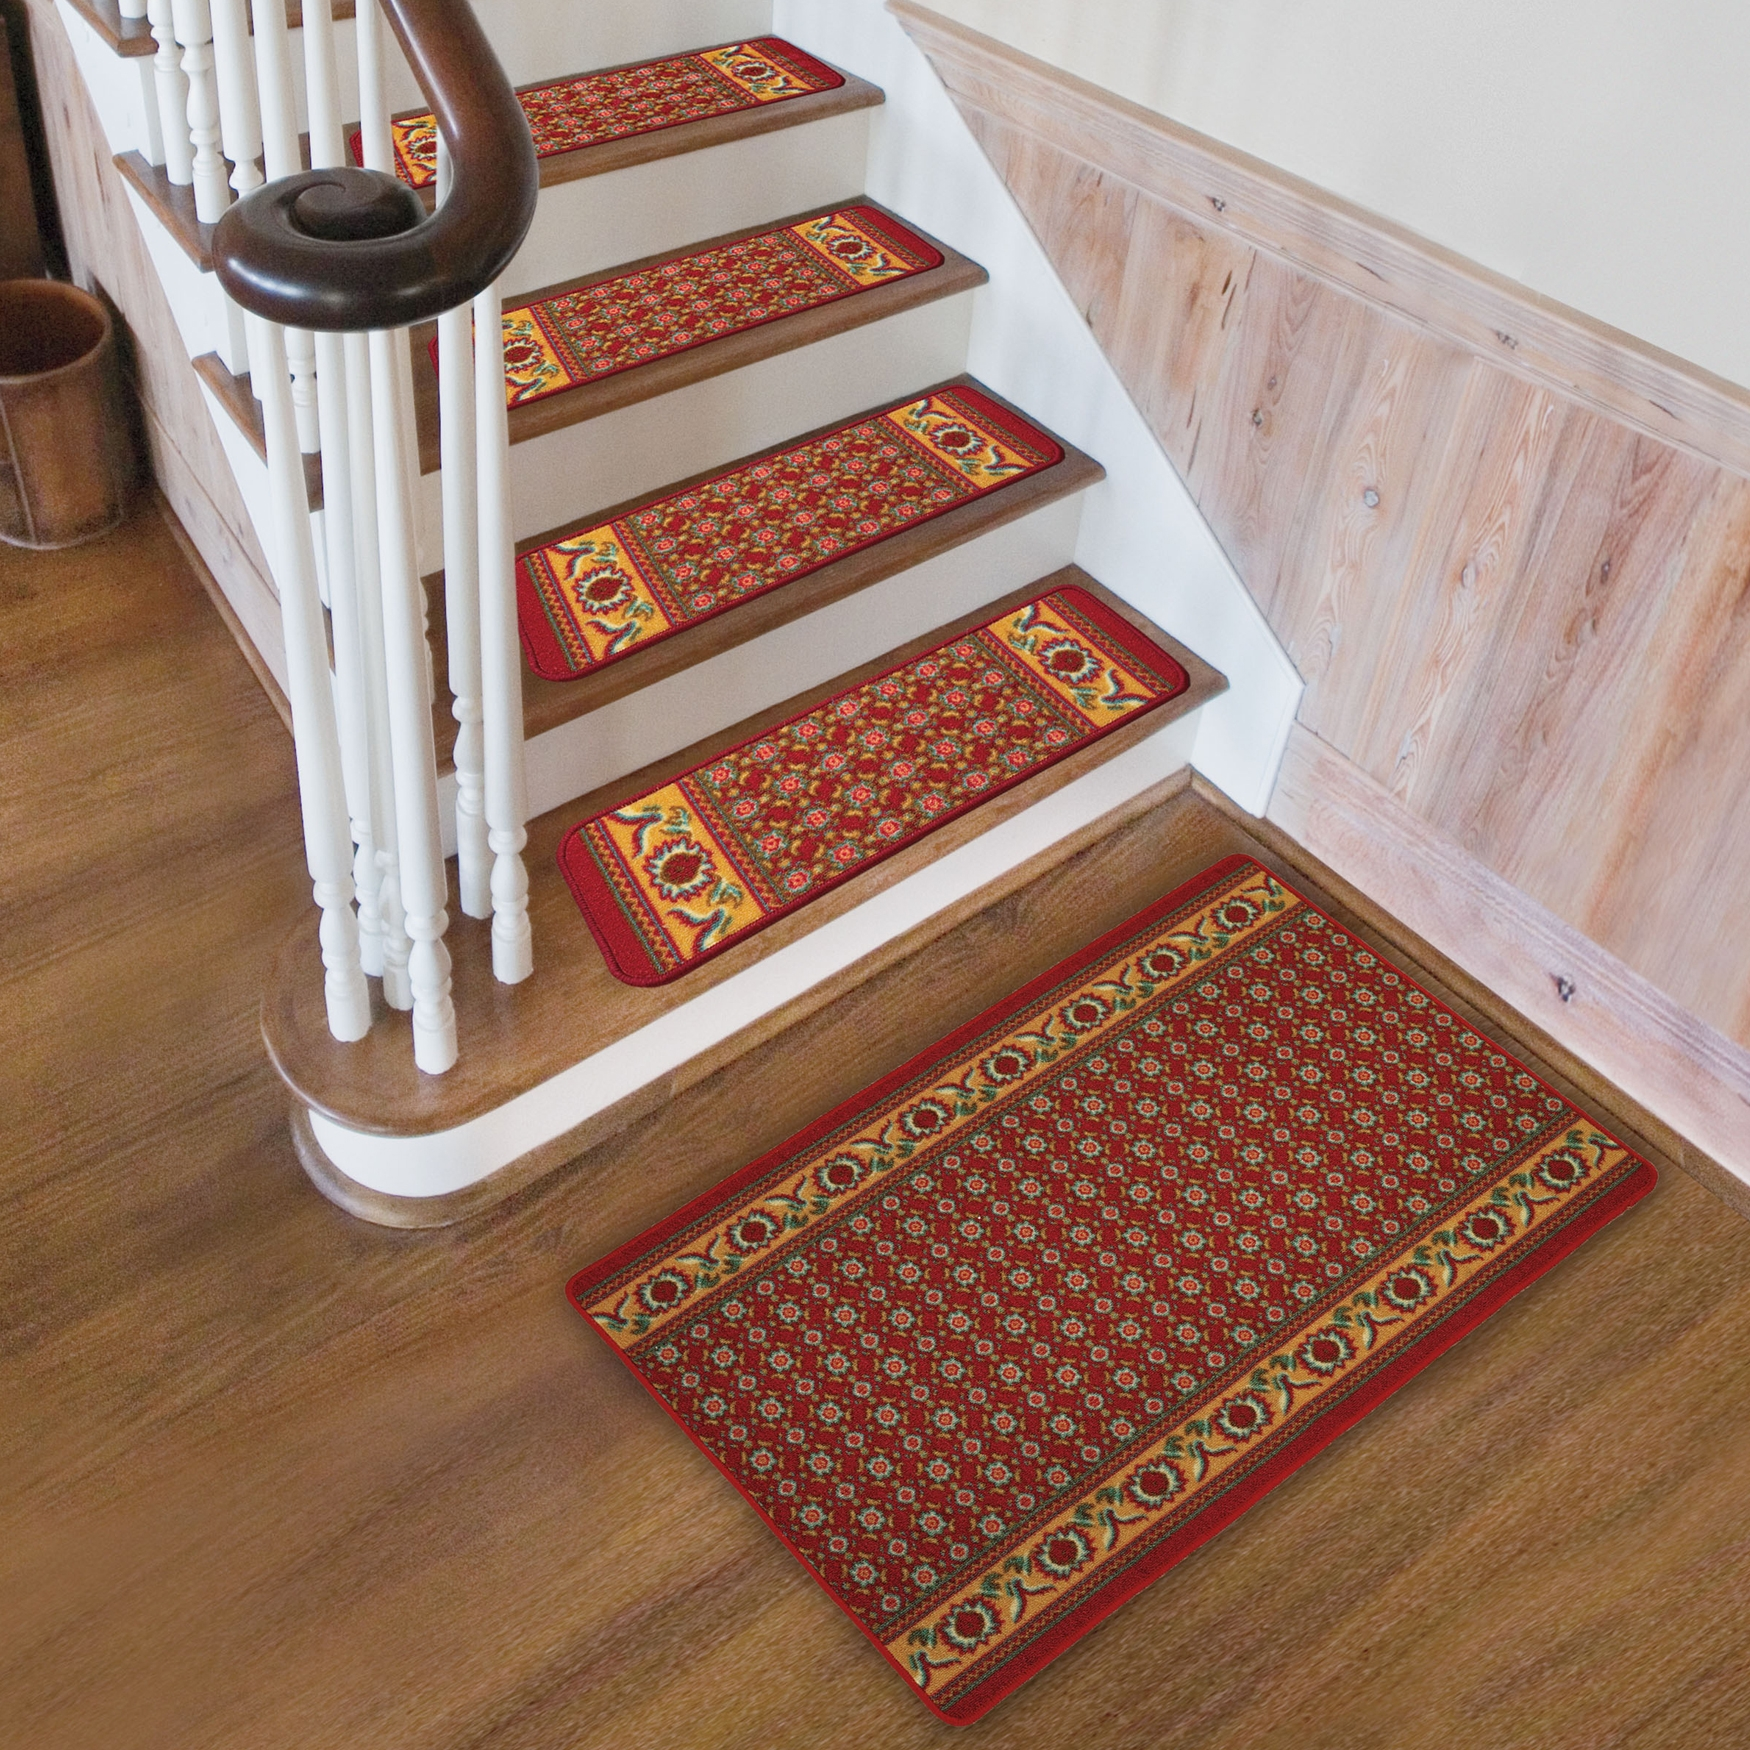 Rugs Carpet Elegant Carpet Stair Treads With Classic Pattern Throughout Carpet Treads For Stairs (View 14 of 15)